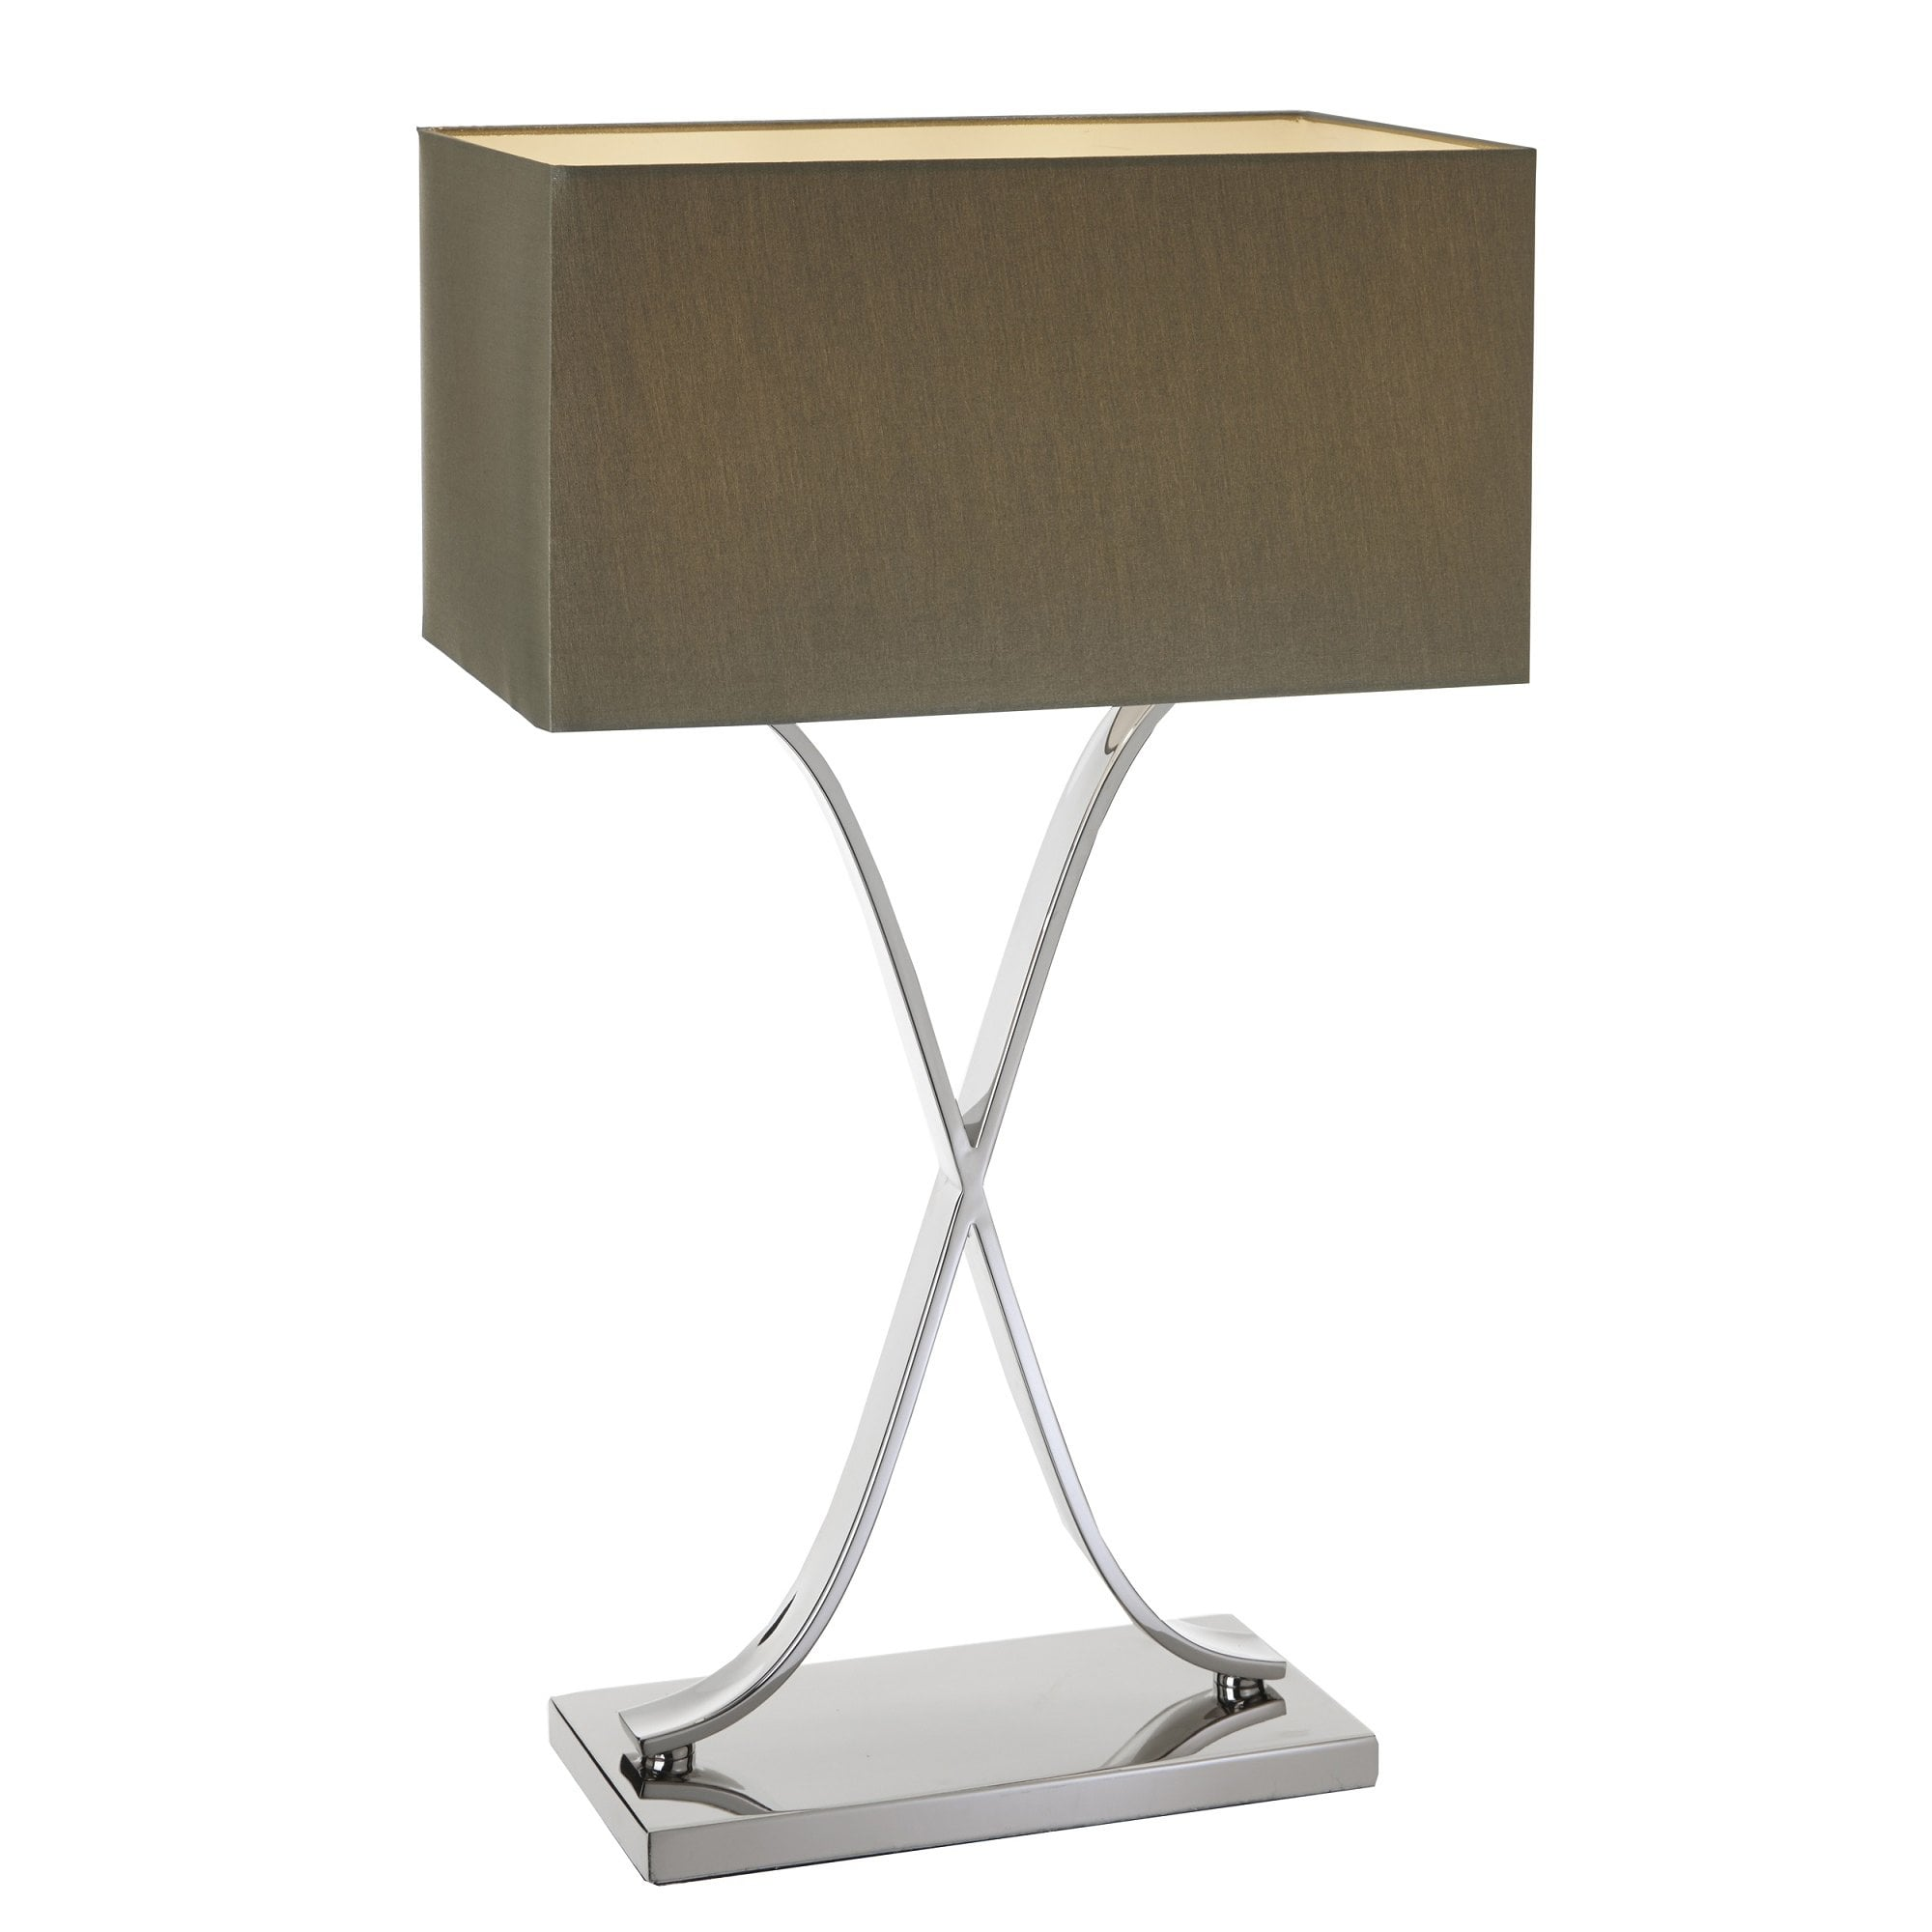 Byton Tall Nickel Table Lamp By Rv Astley Uber Interiors